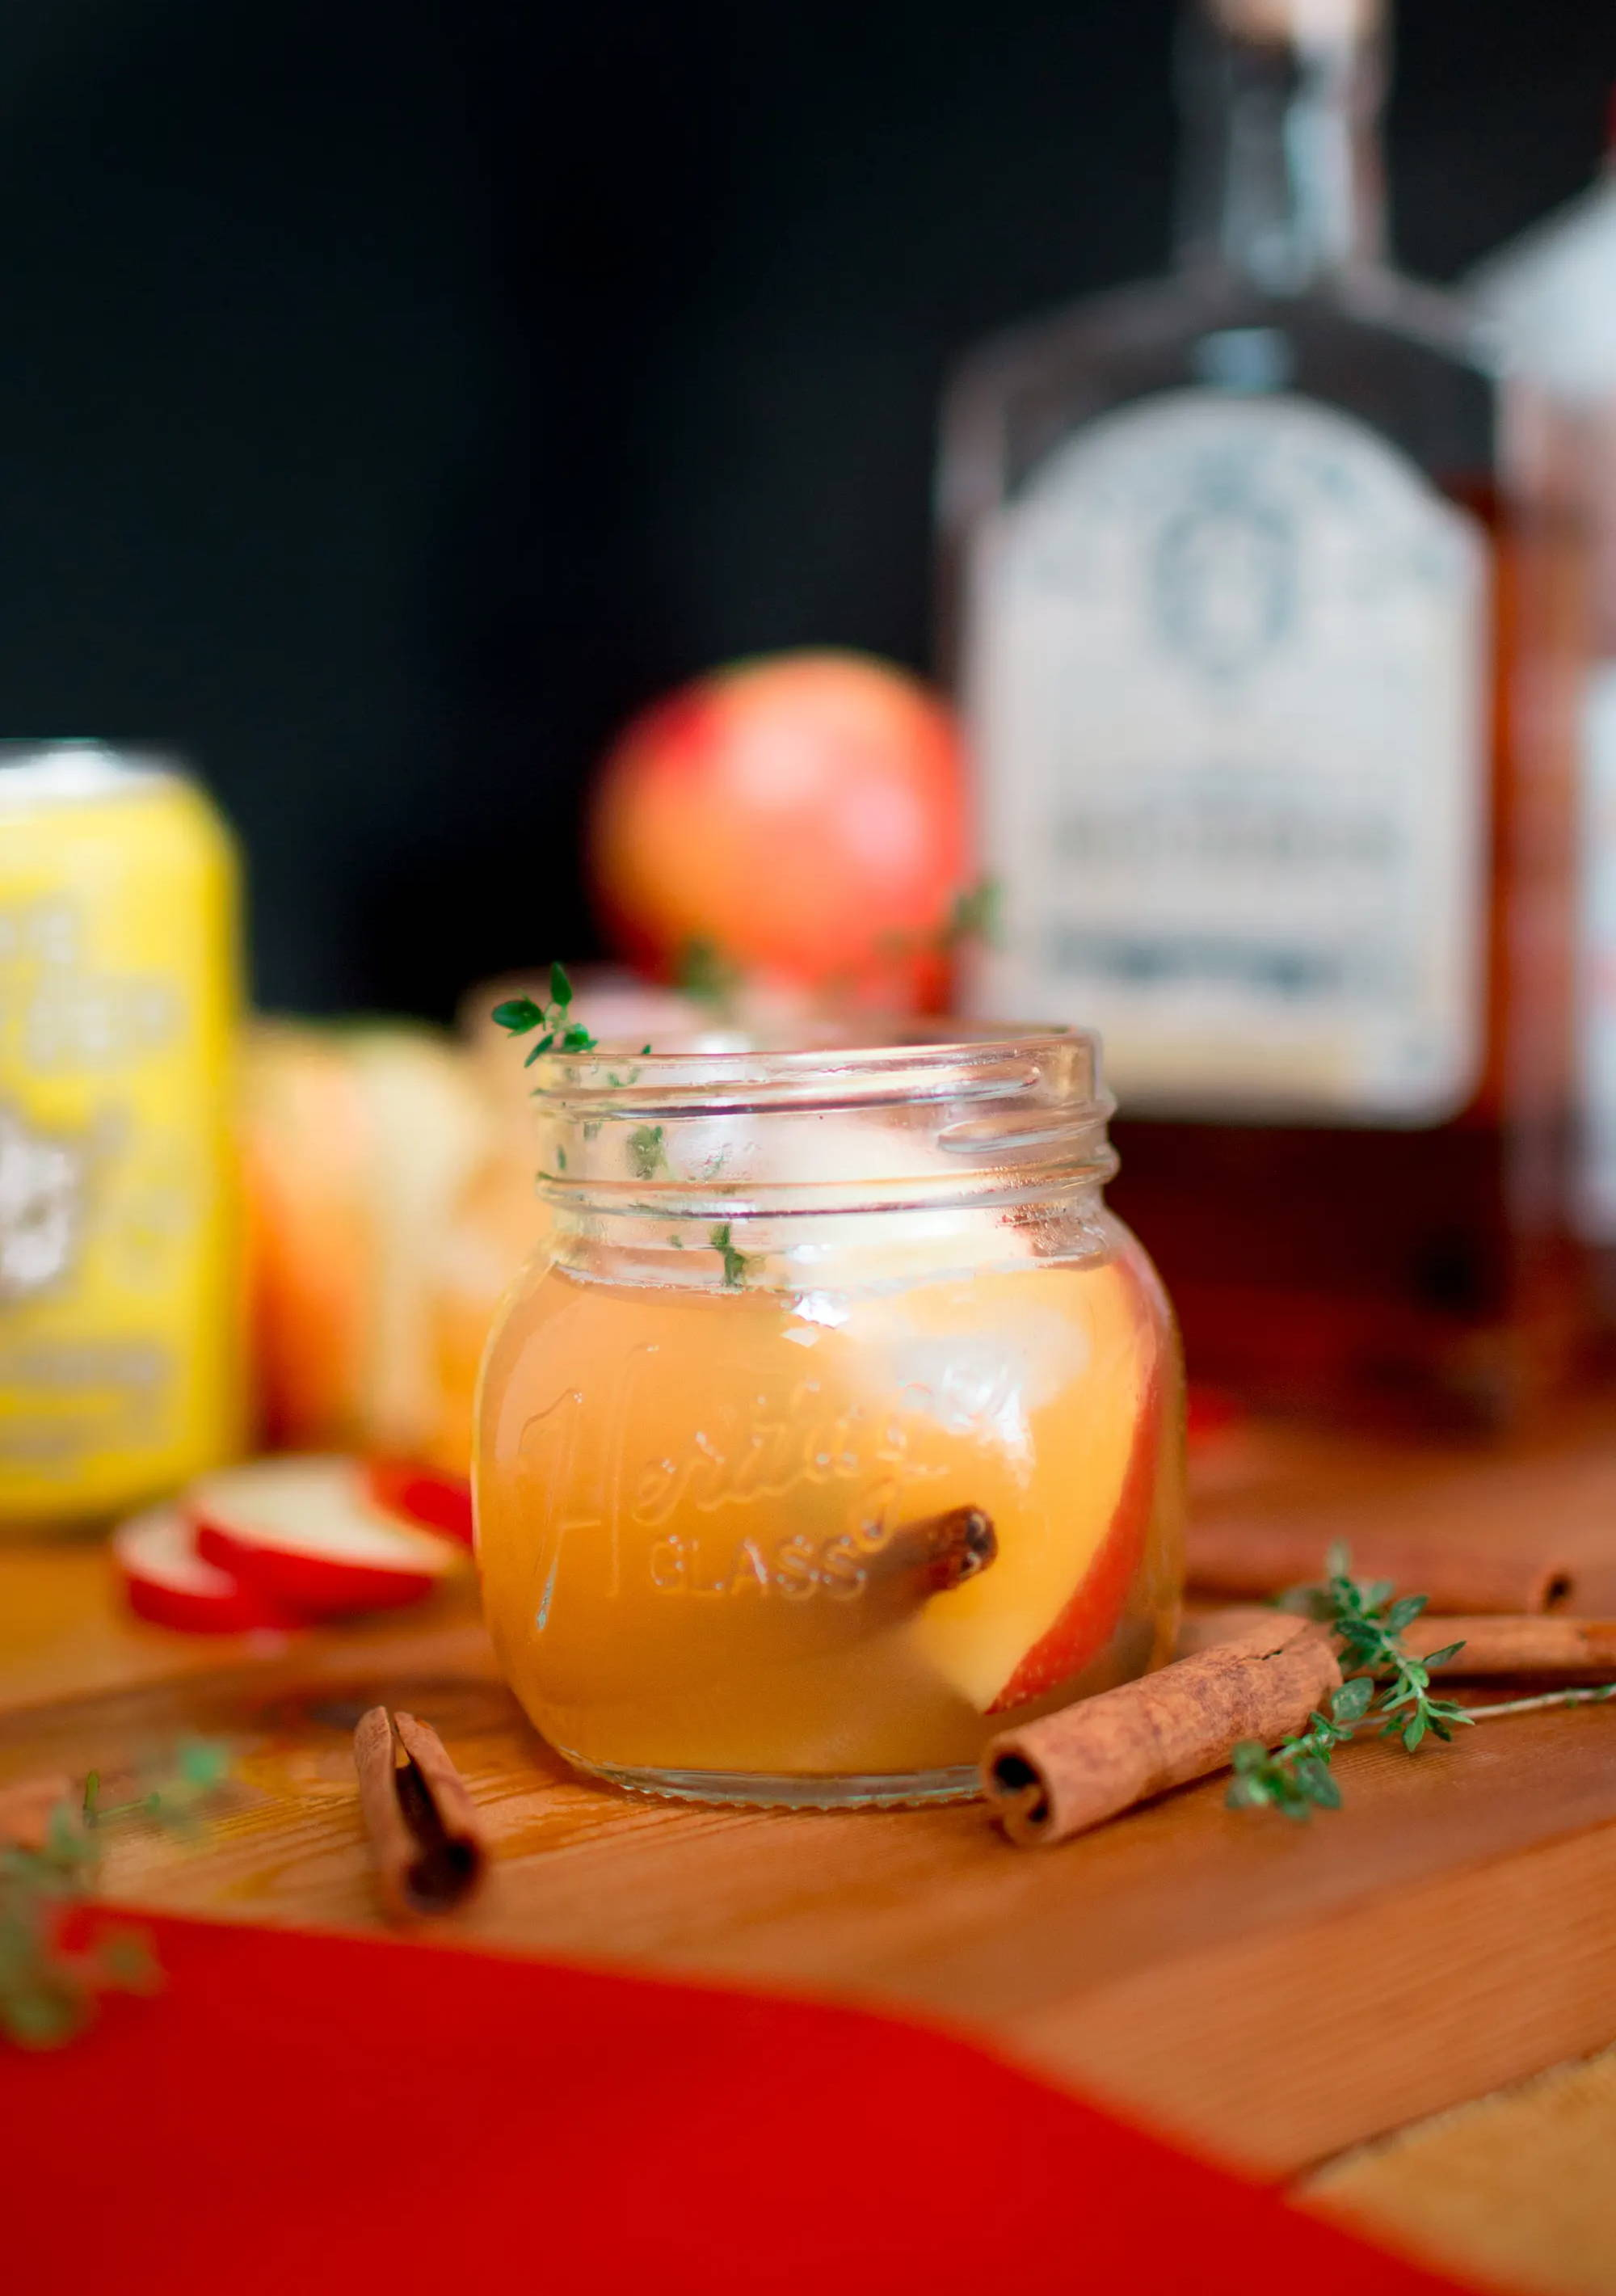 Our kombucha recipe uses all organic ingredients that are good for gut health.